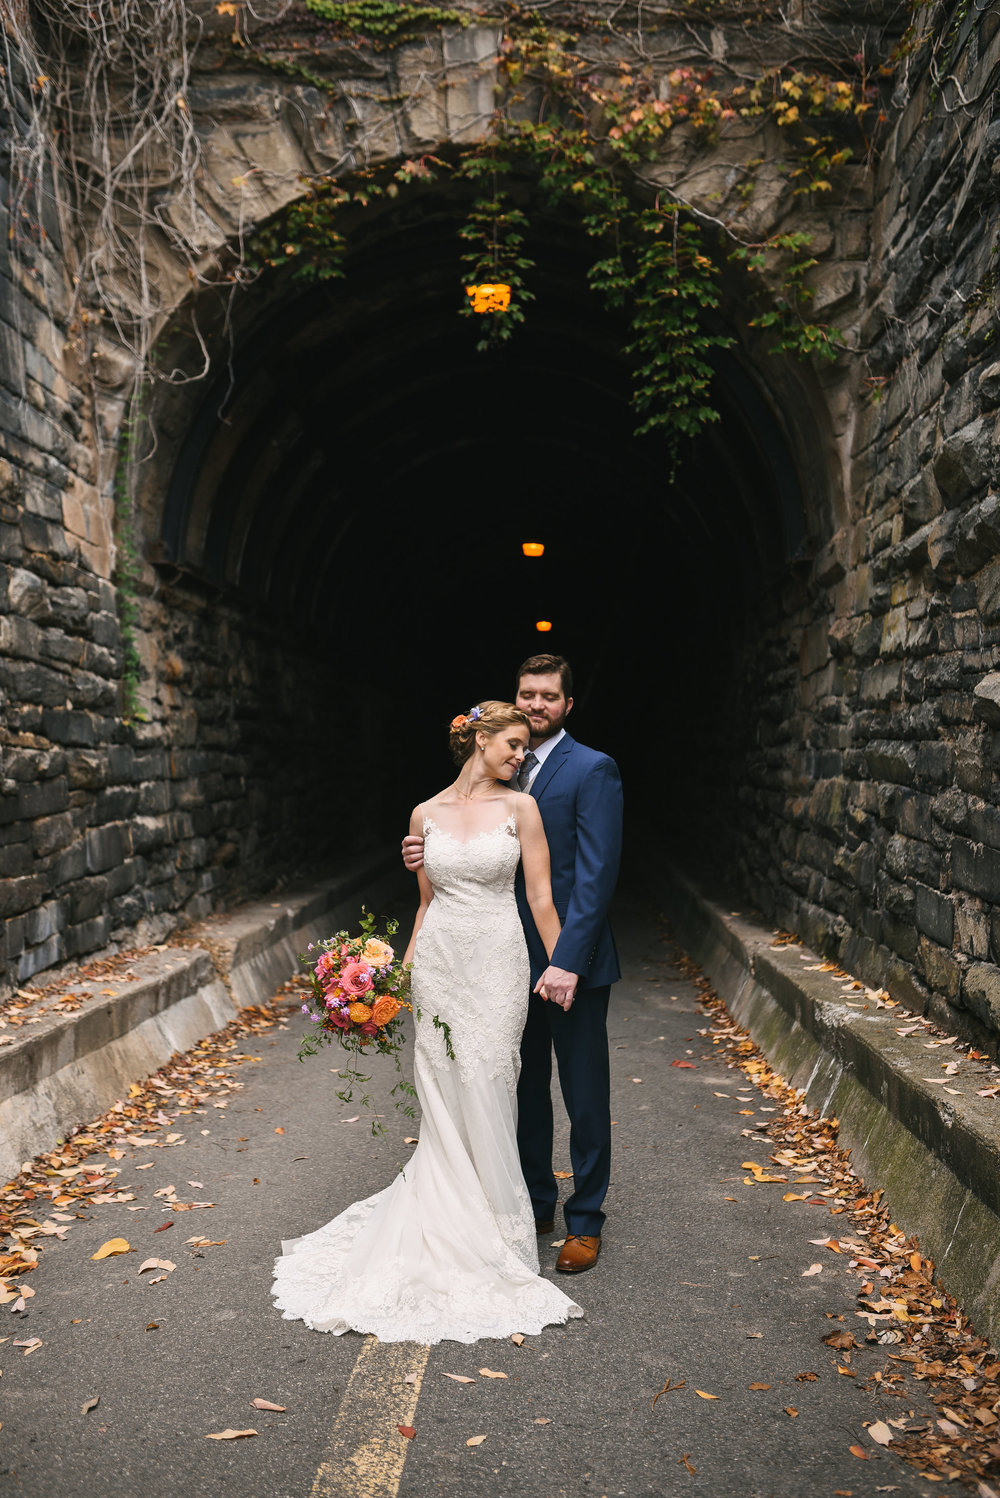 Alexandria, Virginia, Fall Wedding, Historic Wedding, Old Town, DC, Wilkes Street Tunnel, Lian Carlo Wedding Dress, Lace Wedding Dress, Secluded Moments, The Enchanted Florist Bouquet